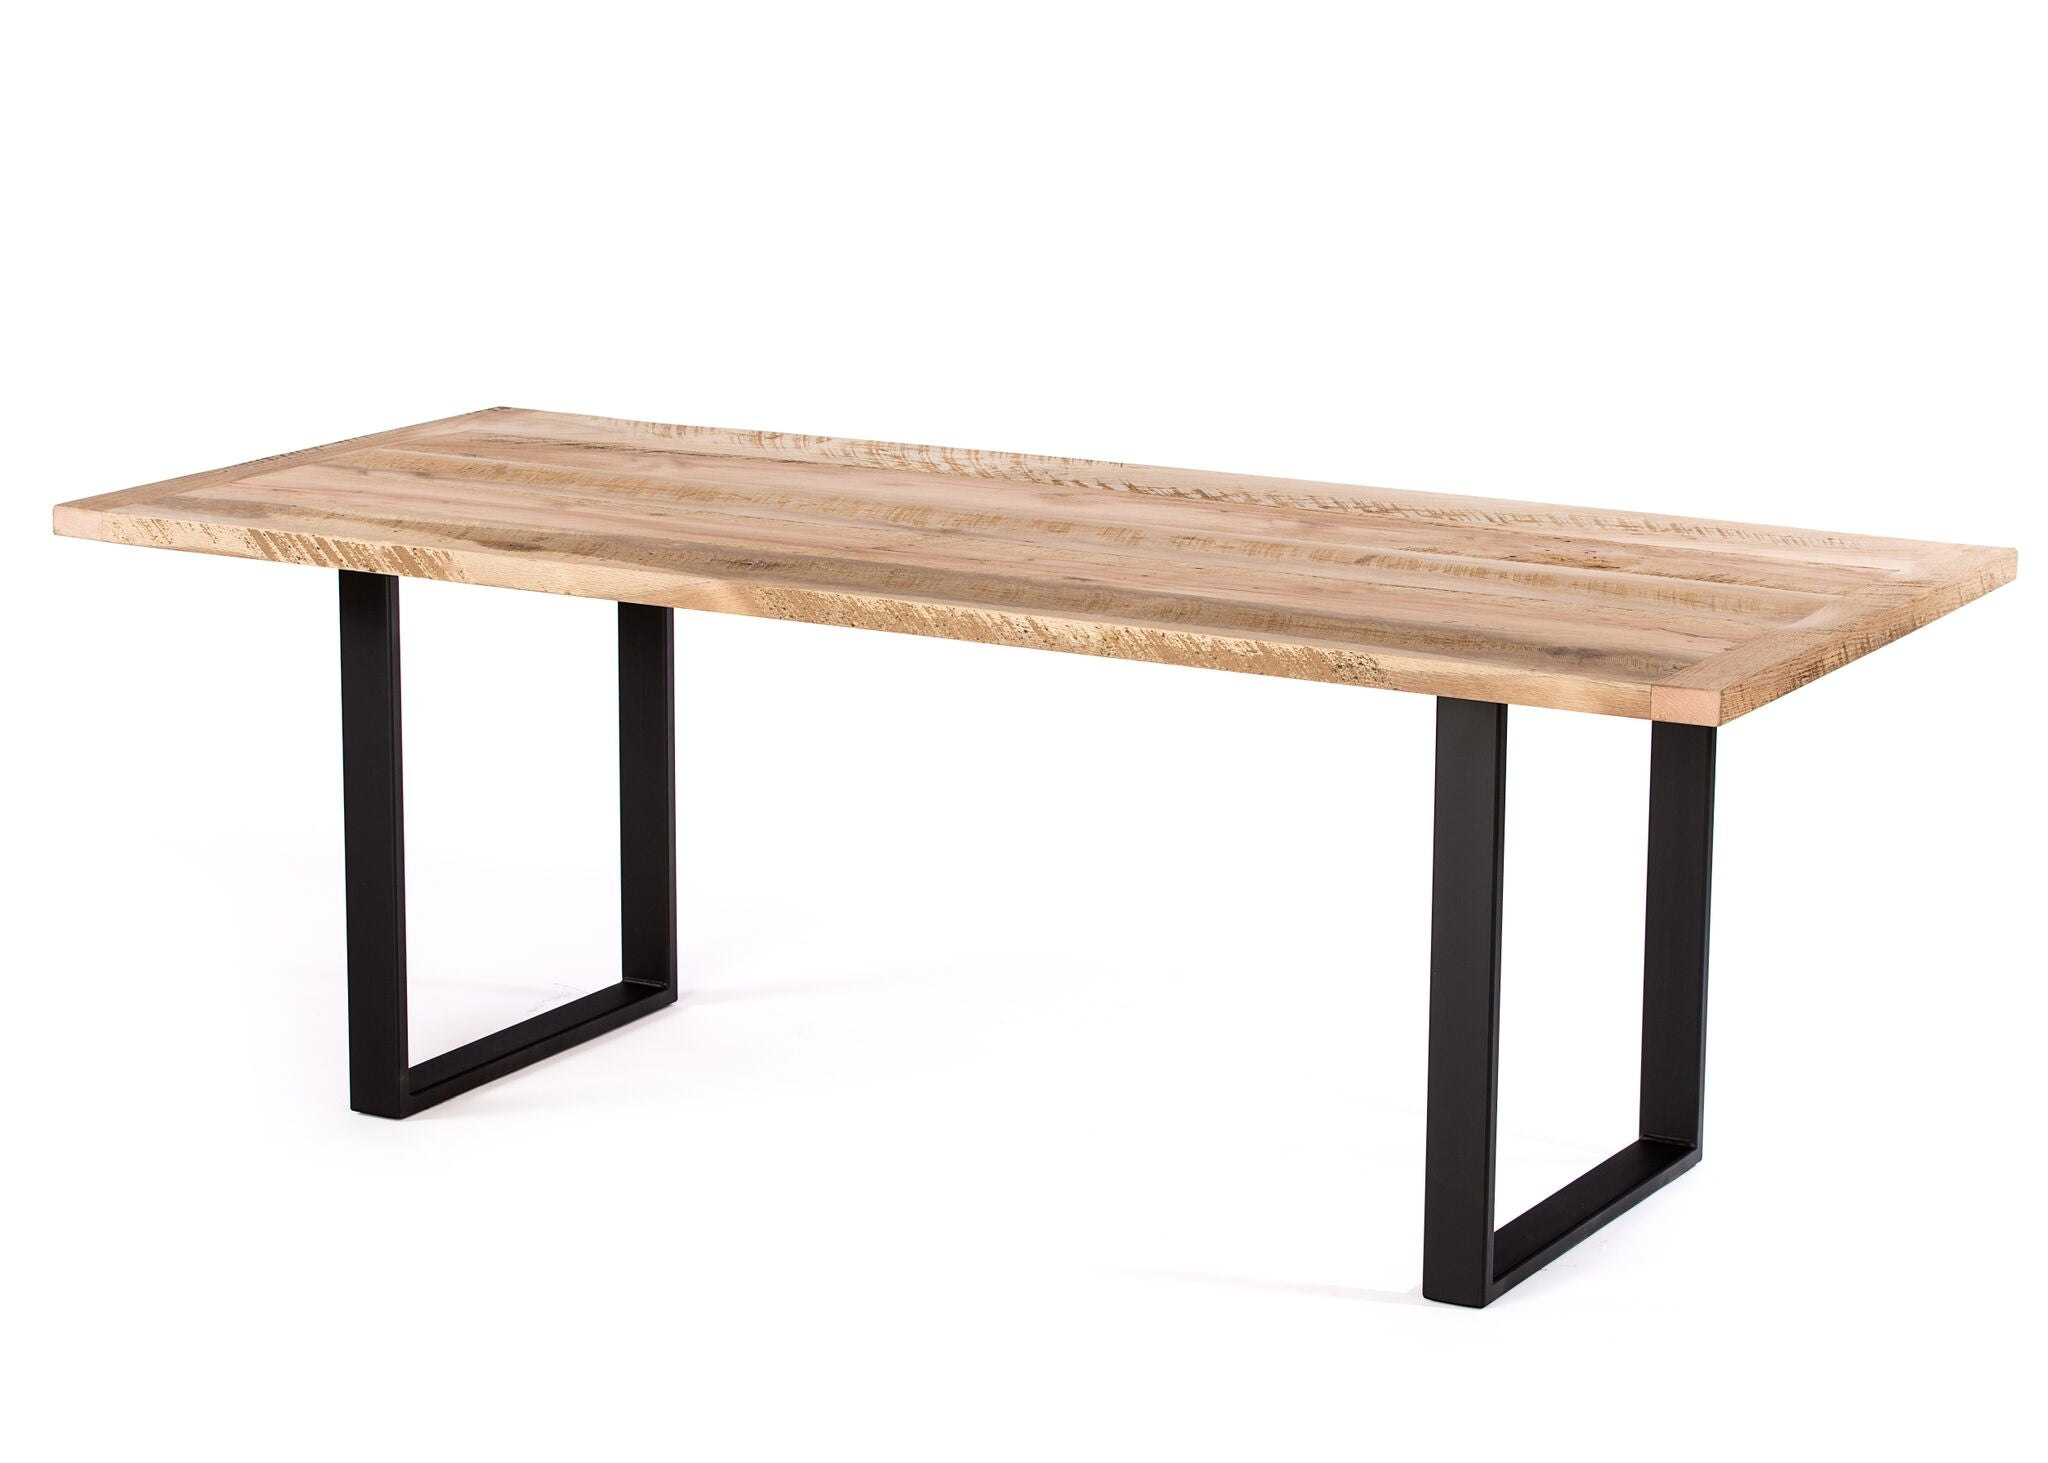 Wood Tables | Maddox Table | CLASSIC | Natural Ash | CUSTOM SIZE L 60 W 30 H 29 | kingston-krafts-zinc-tables.